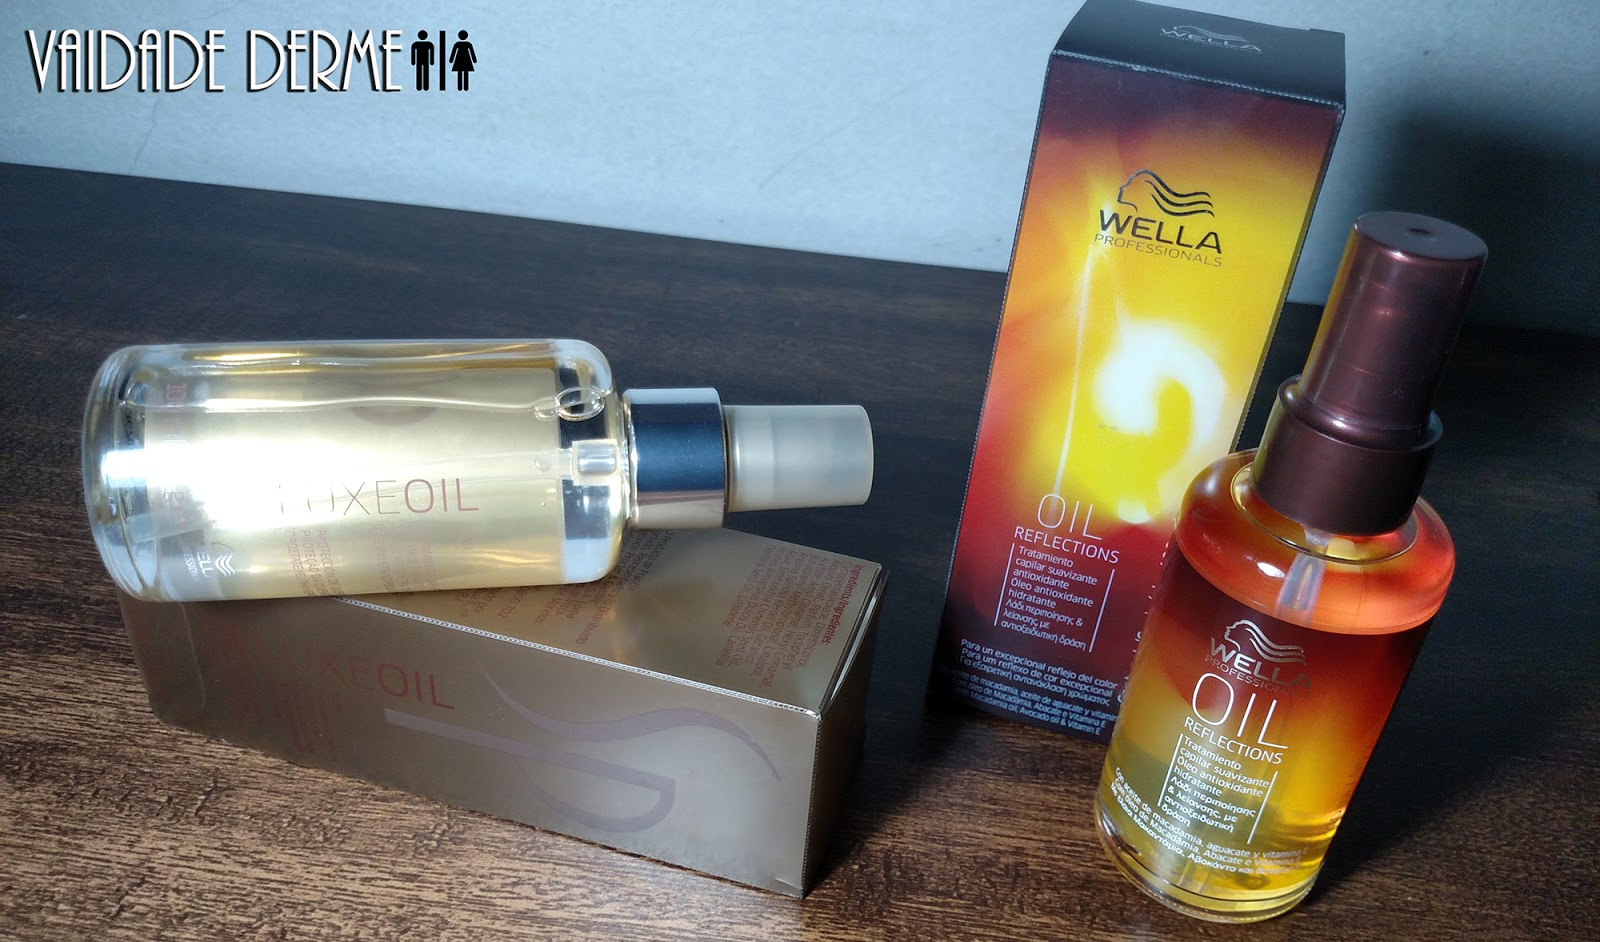 Wella Professionals Oil Reflections e SP System Professional Luxe Oil